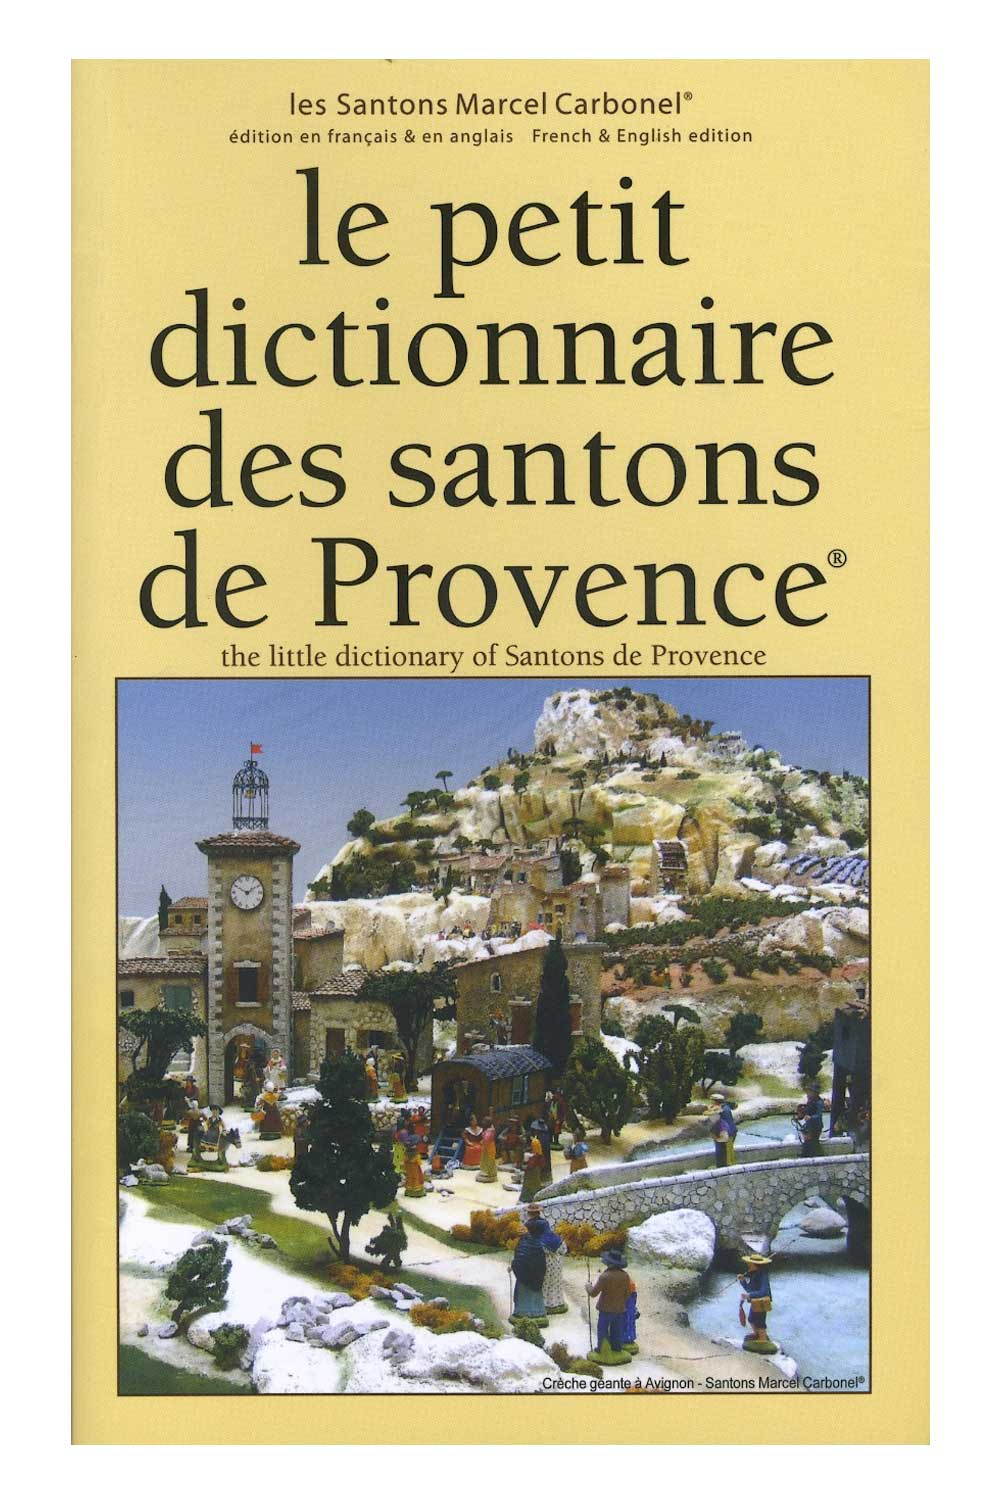 The Little Dictionary of Santons de Provence 8th ed. by Carbonel